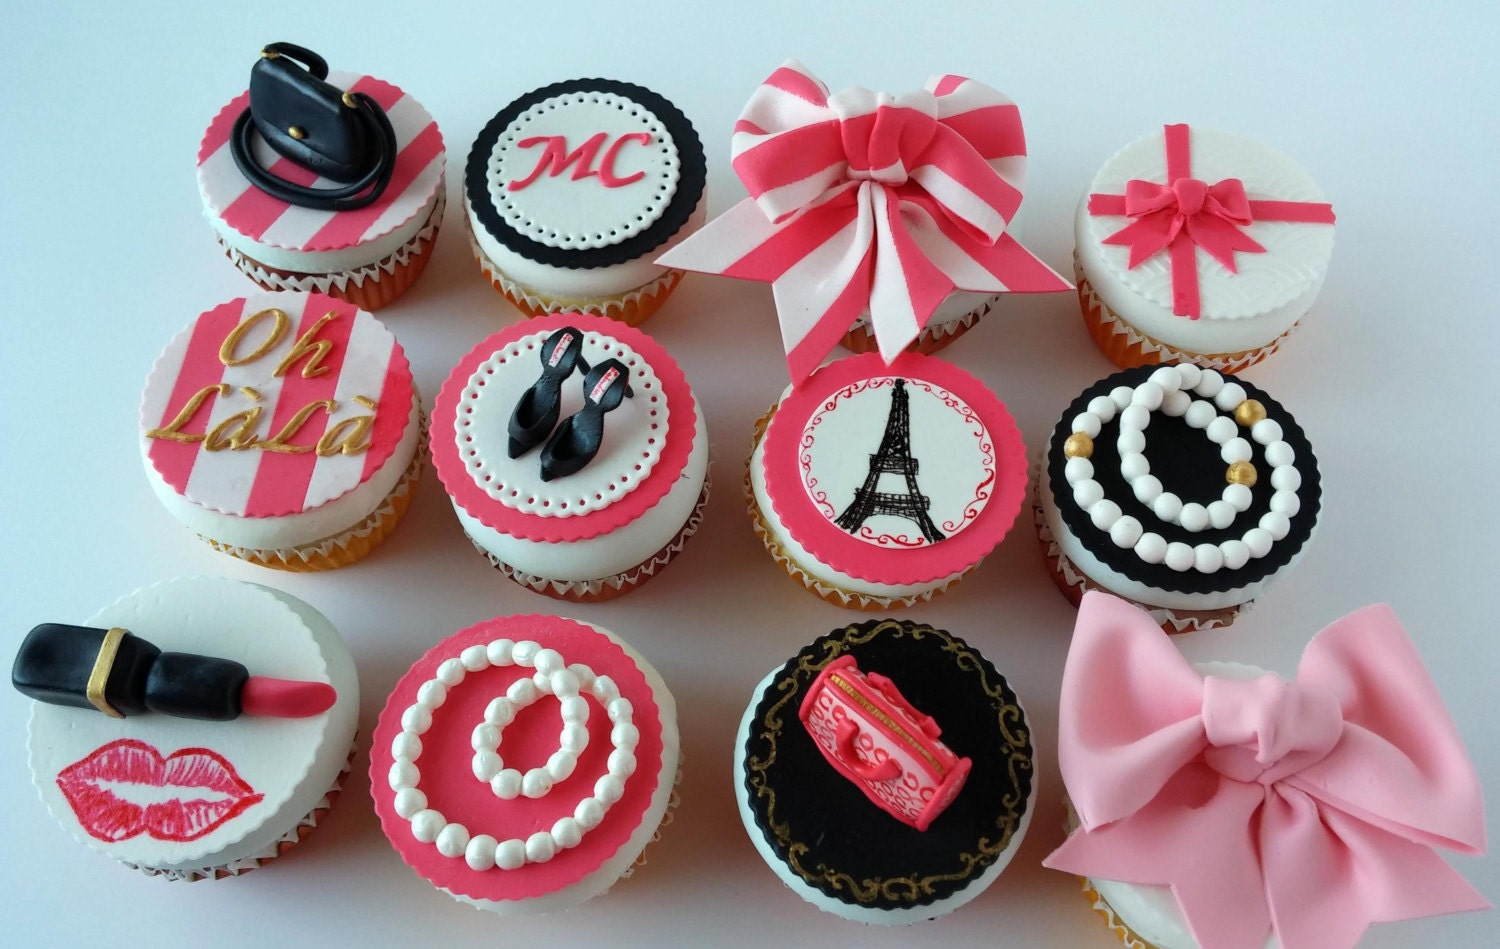 Edible Cupcake topper Paris Fashion Theme purses necklaces